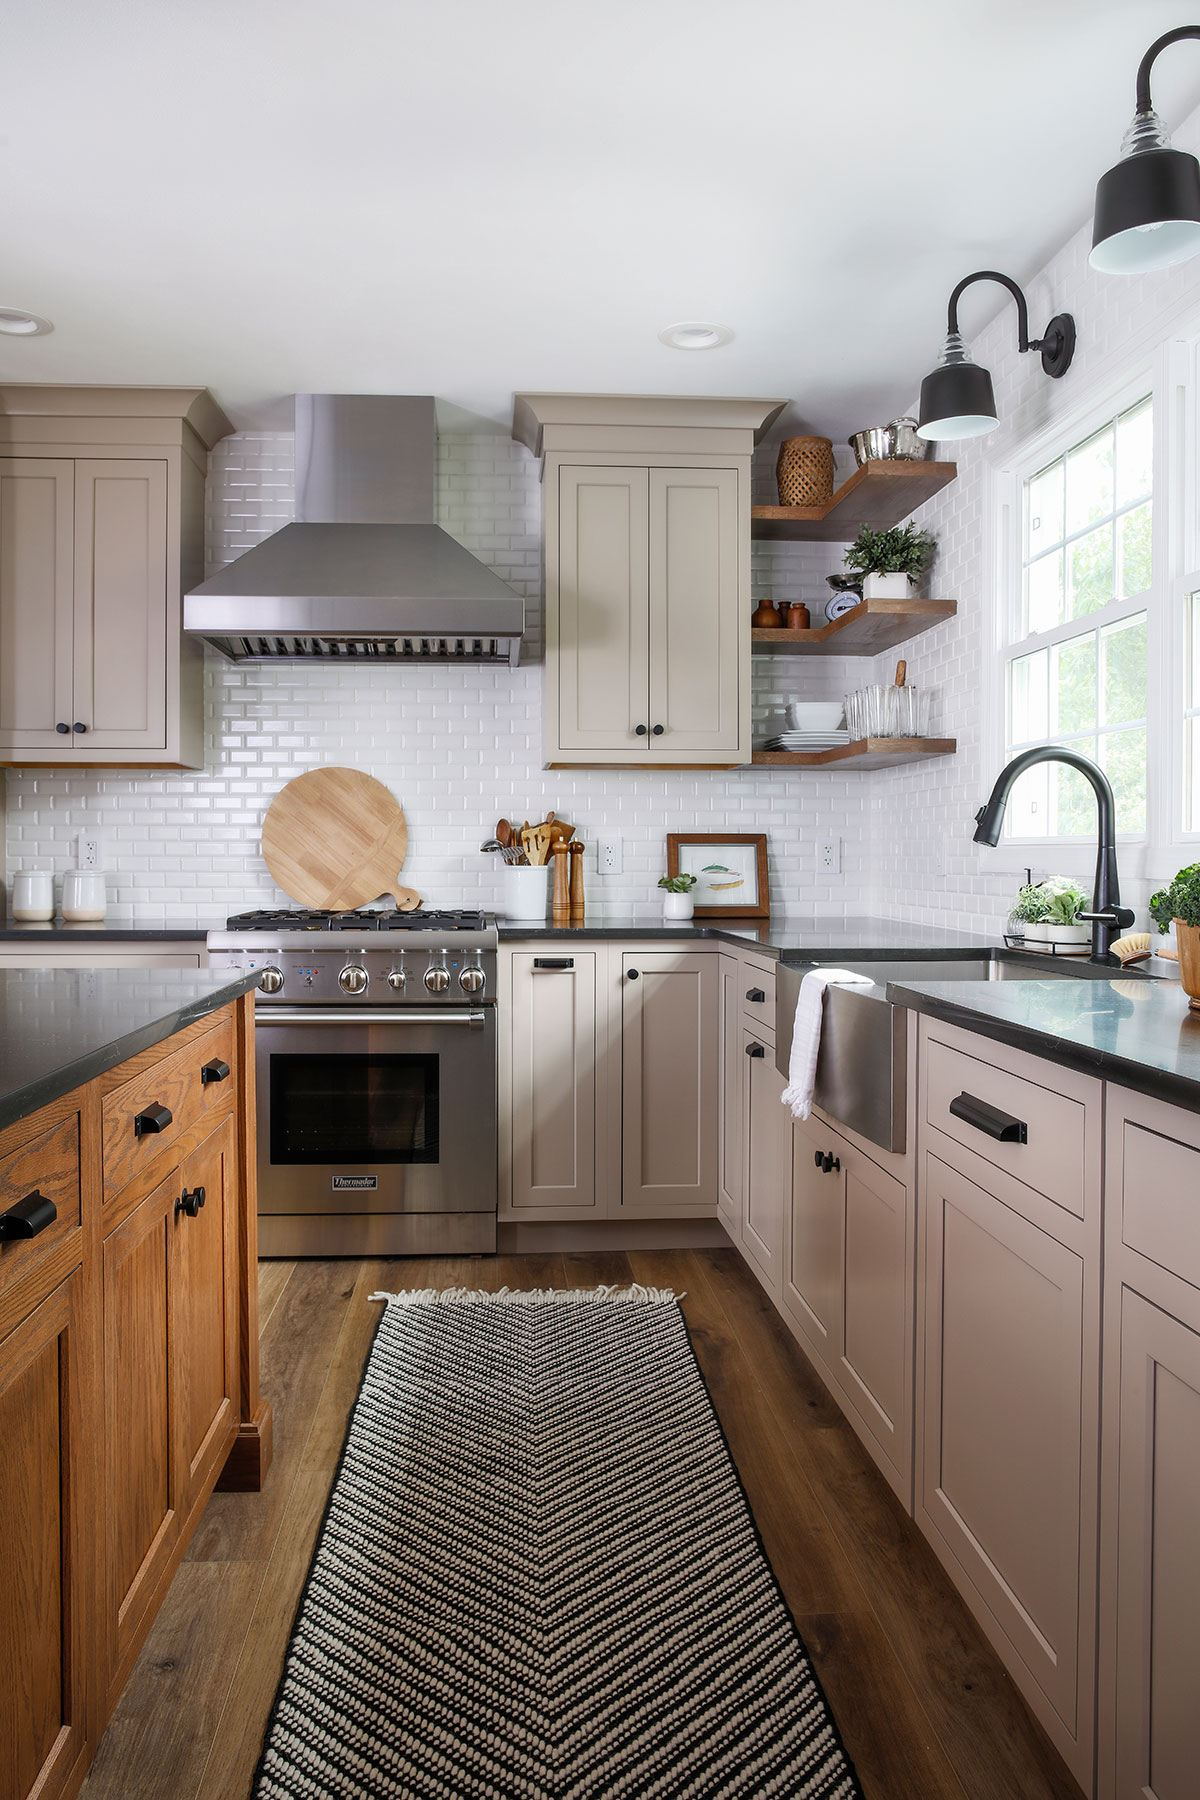 traditional-country-kitchen-grey-gray-cabinets-white-subway-tile.jpg